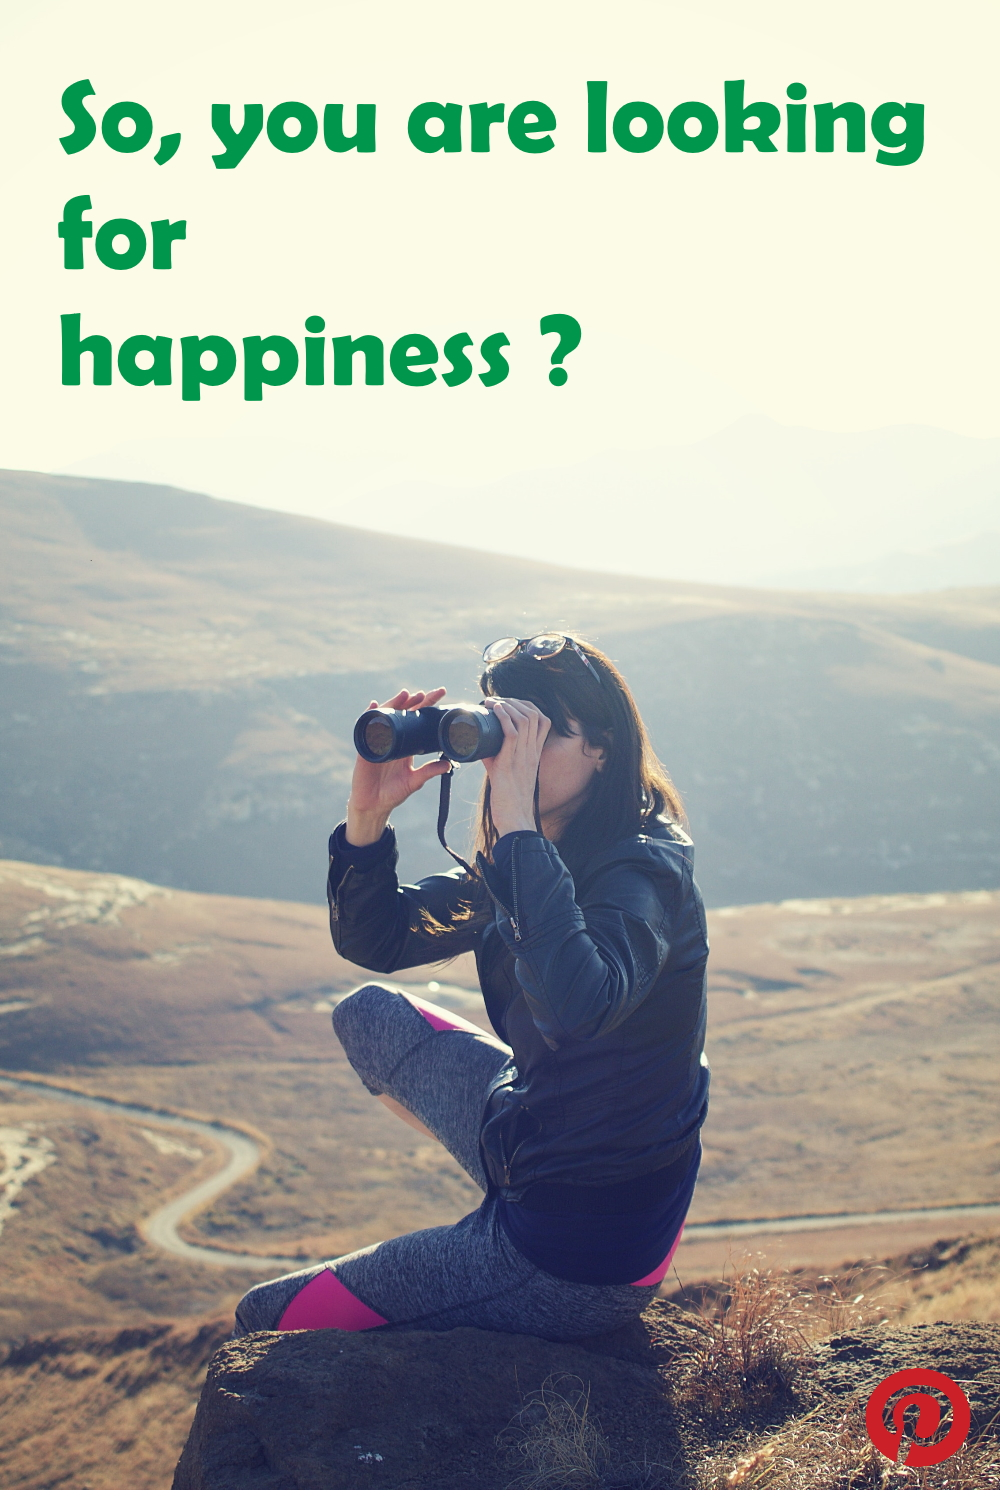 So - you are looking for happiness?